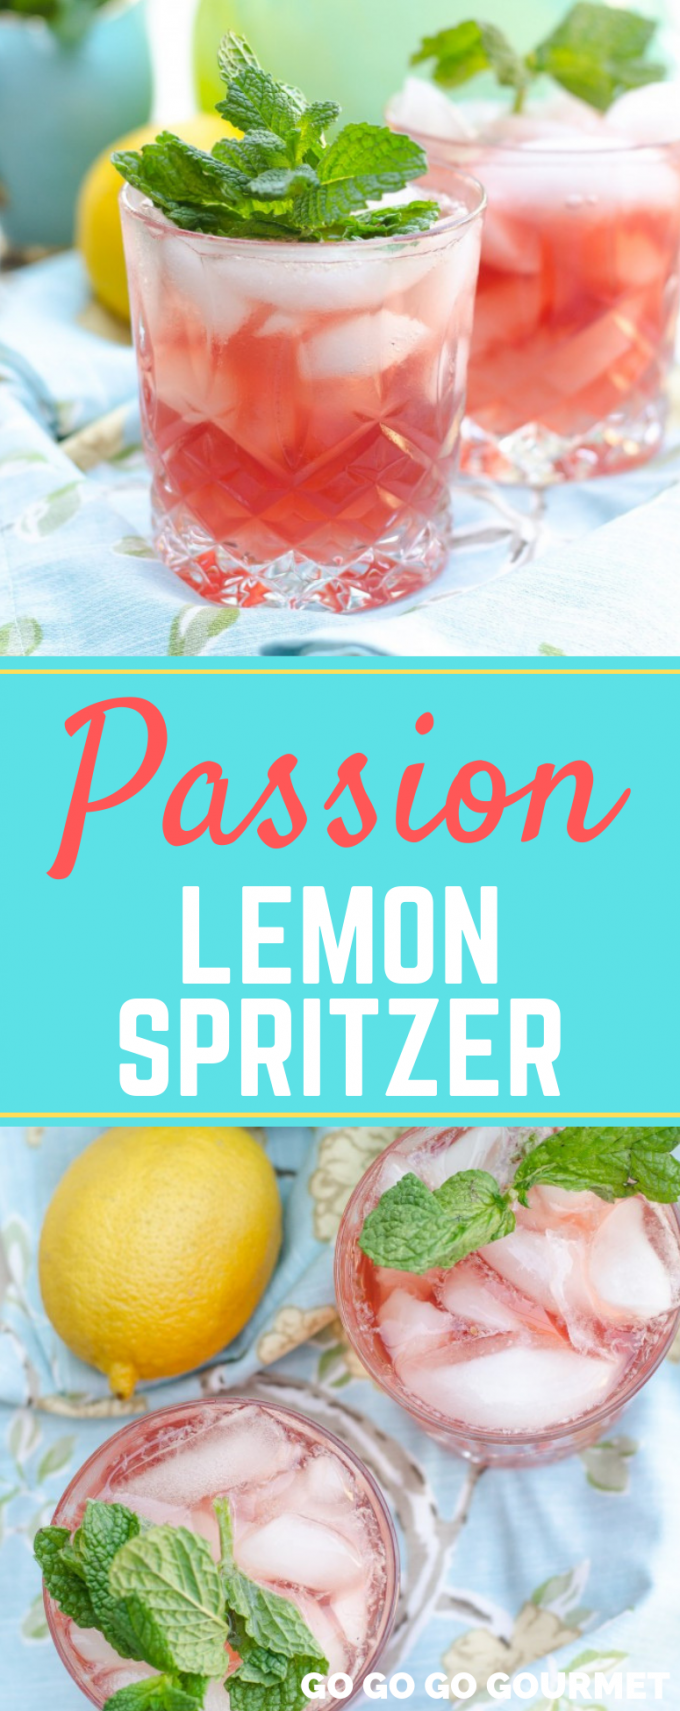 This non-alcoholic Passion Lemon Spritzer is the perfect refreshing drink for summer! Whether you leave it virgin or add vodka or any of the white wines, this is sure to become one of your favorite drink recipes! #gogogogourmet #passionlemonspritzer #summercocktailrecipes #easyspritzerrecipes via @gogogogourmet